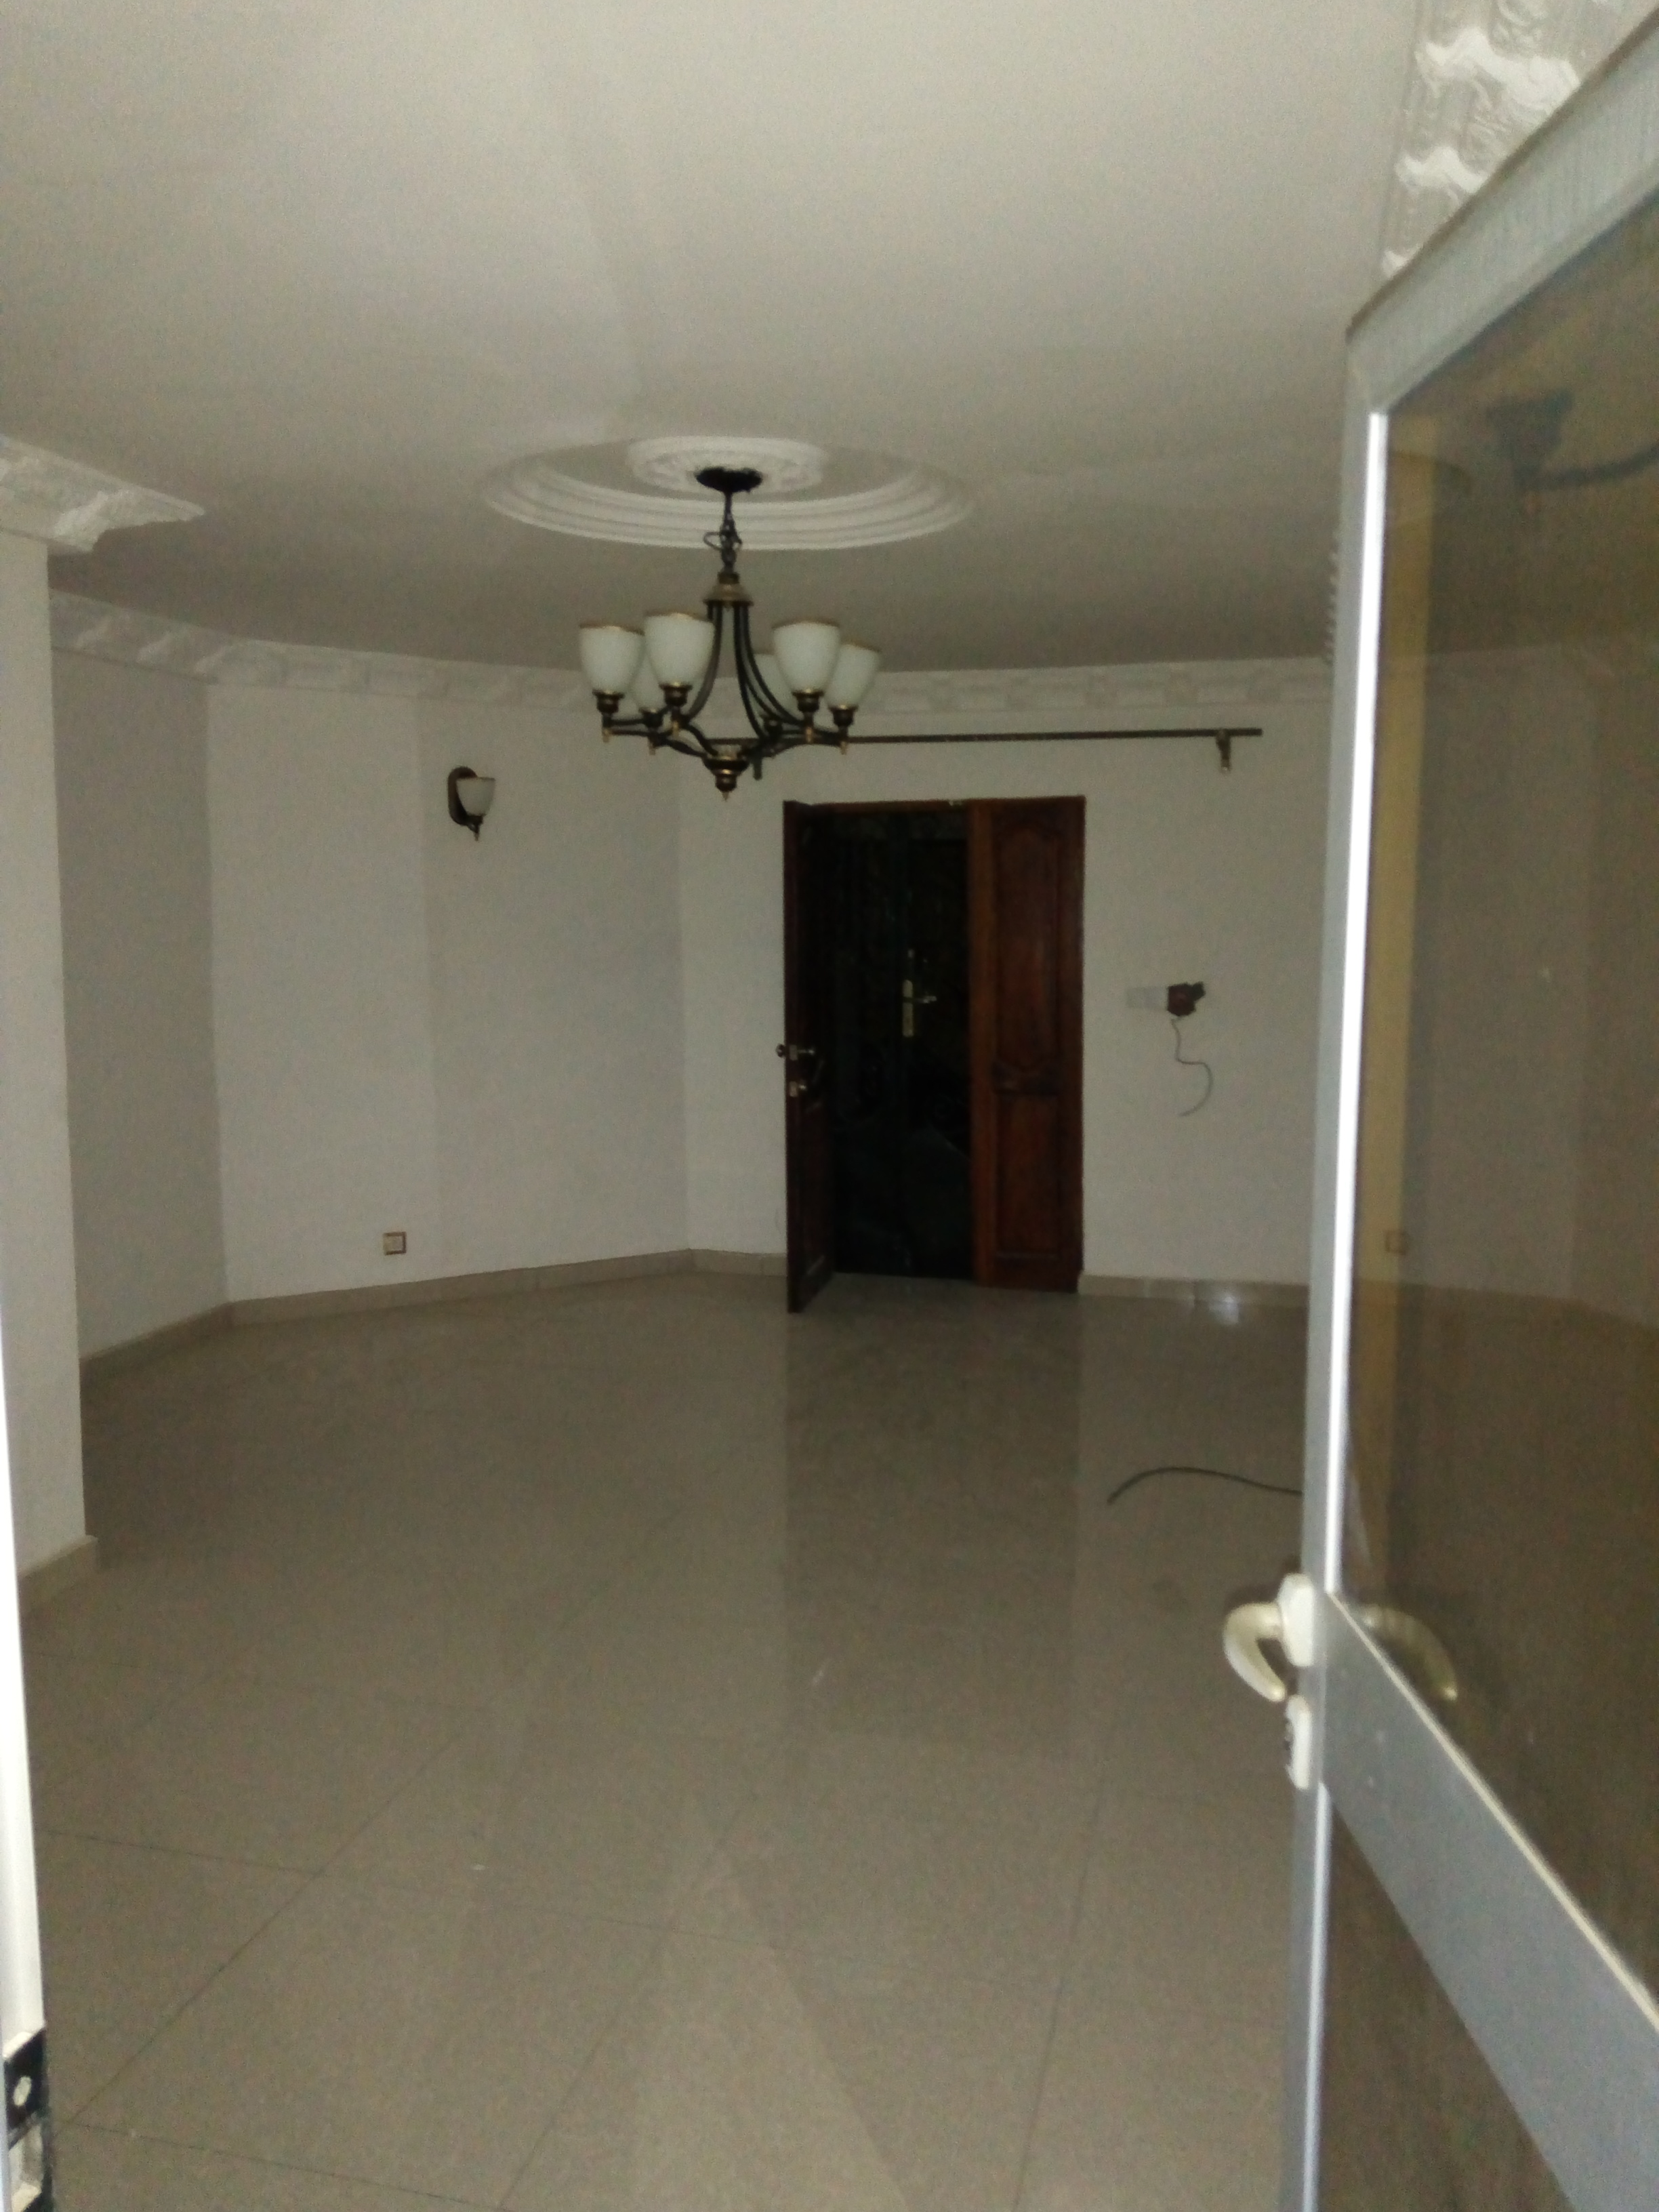 Apartment to rent - Douala, Makepe,  - 1 living room(s), 2 bedroom(s), 2 bathroom(s) - 150 000 FCFA / month